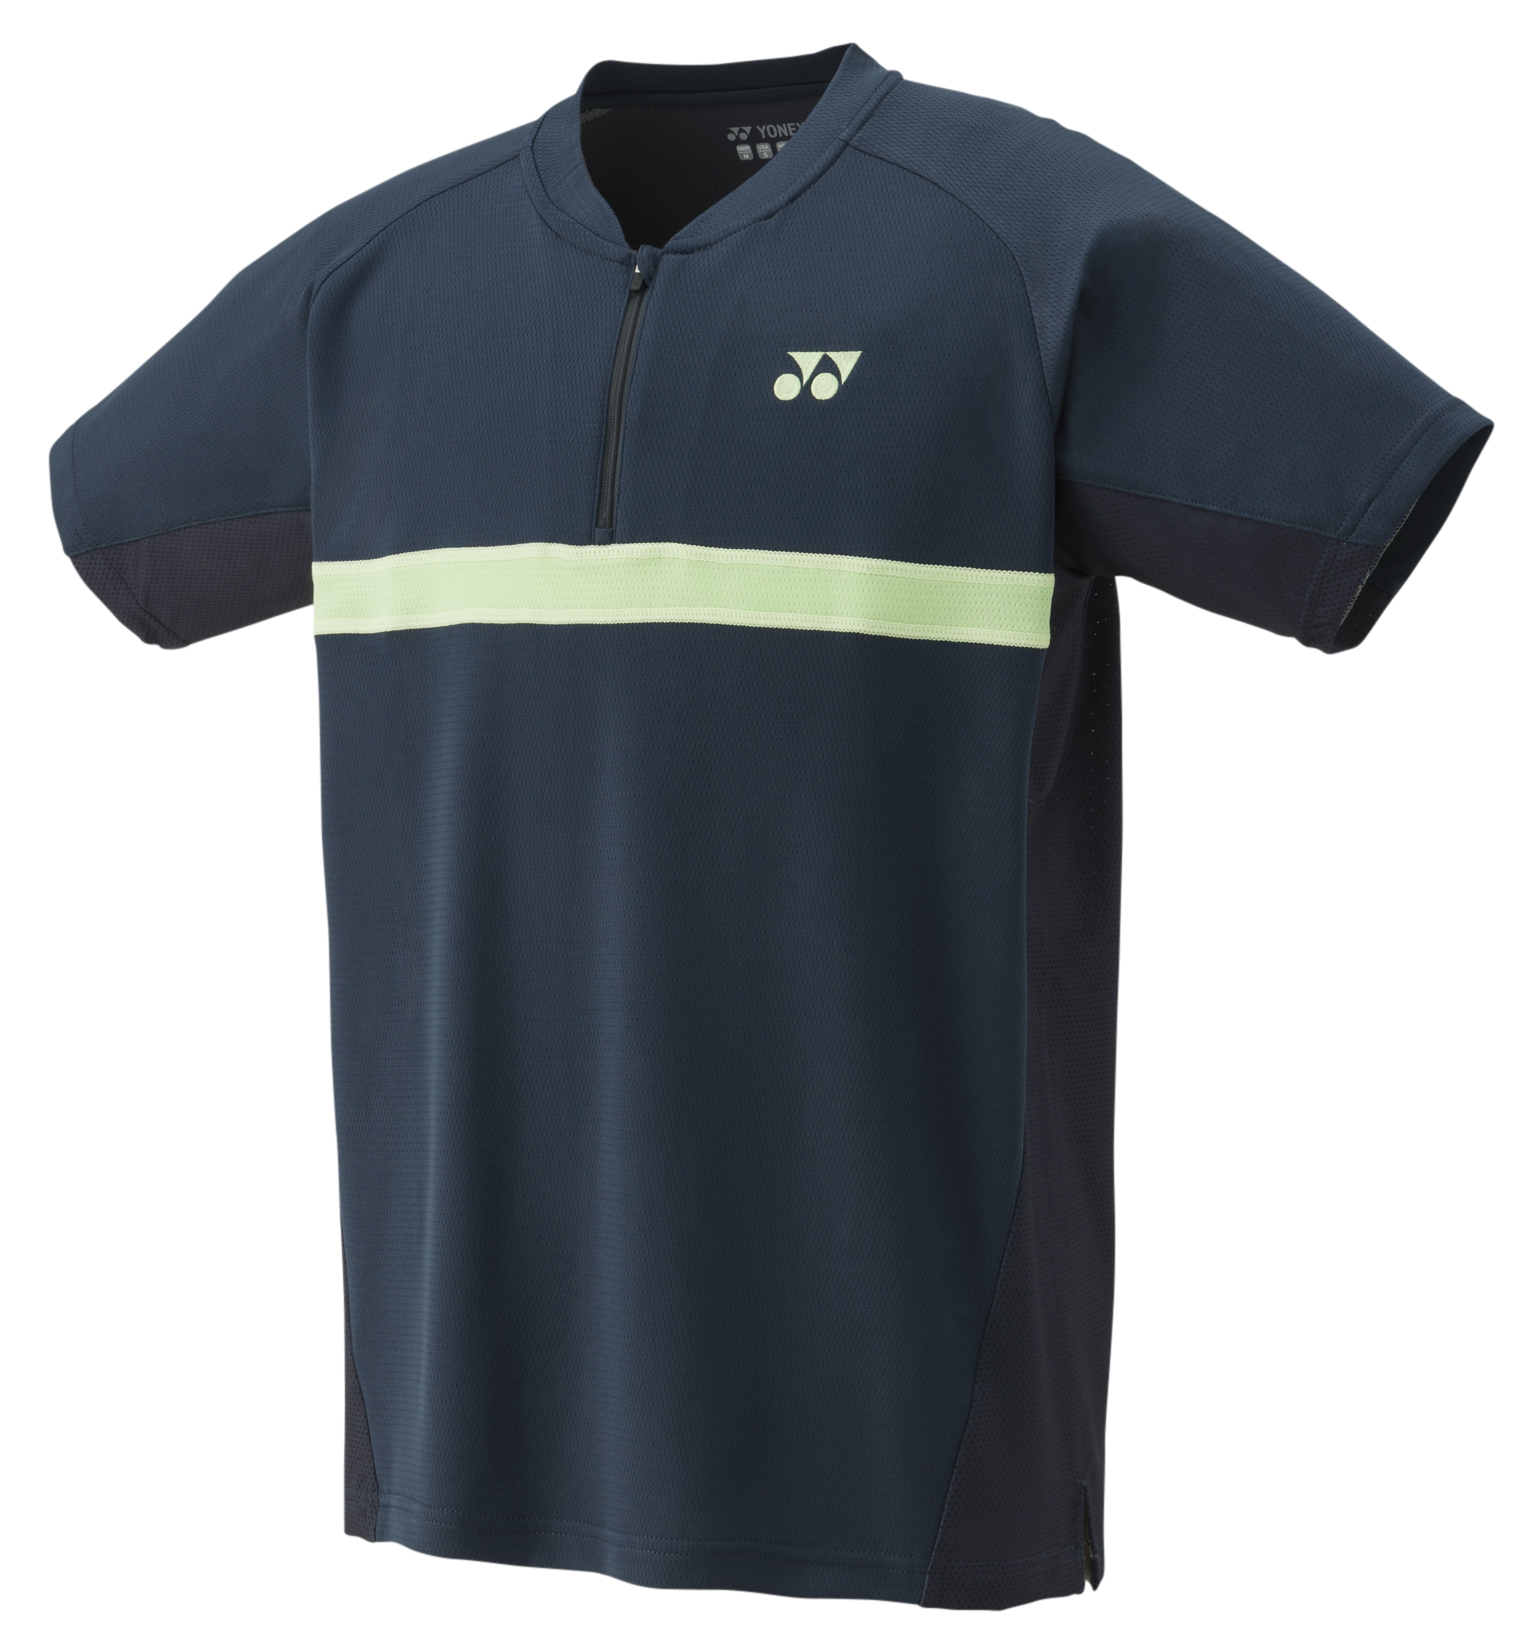 Yonex Mens Crew Neck Shirt 10225 Charcoal